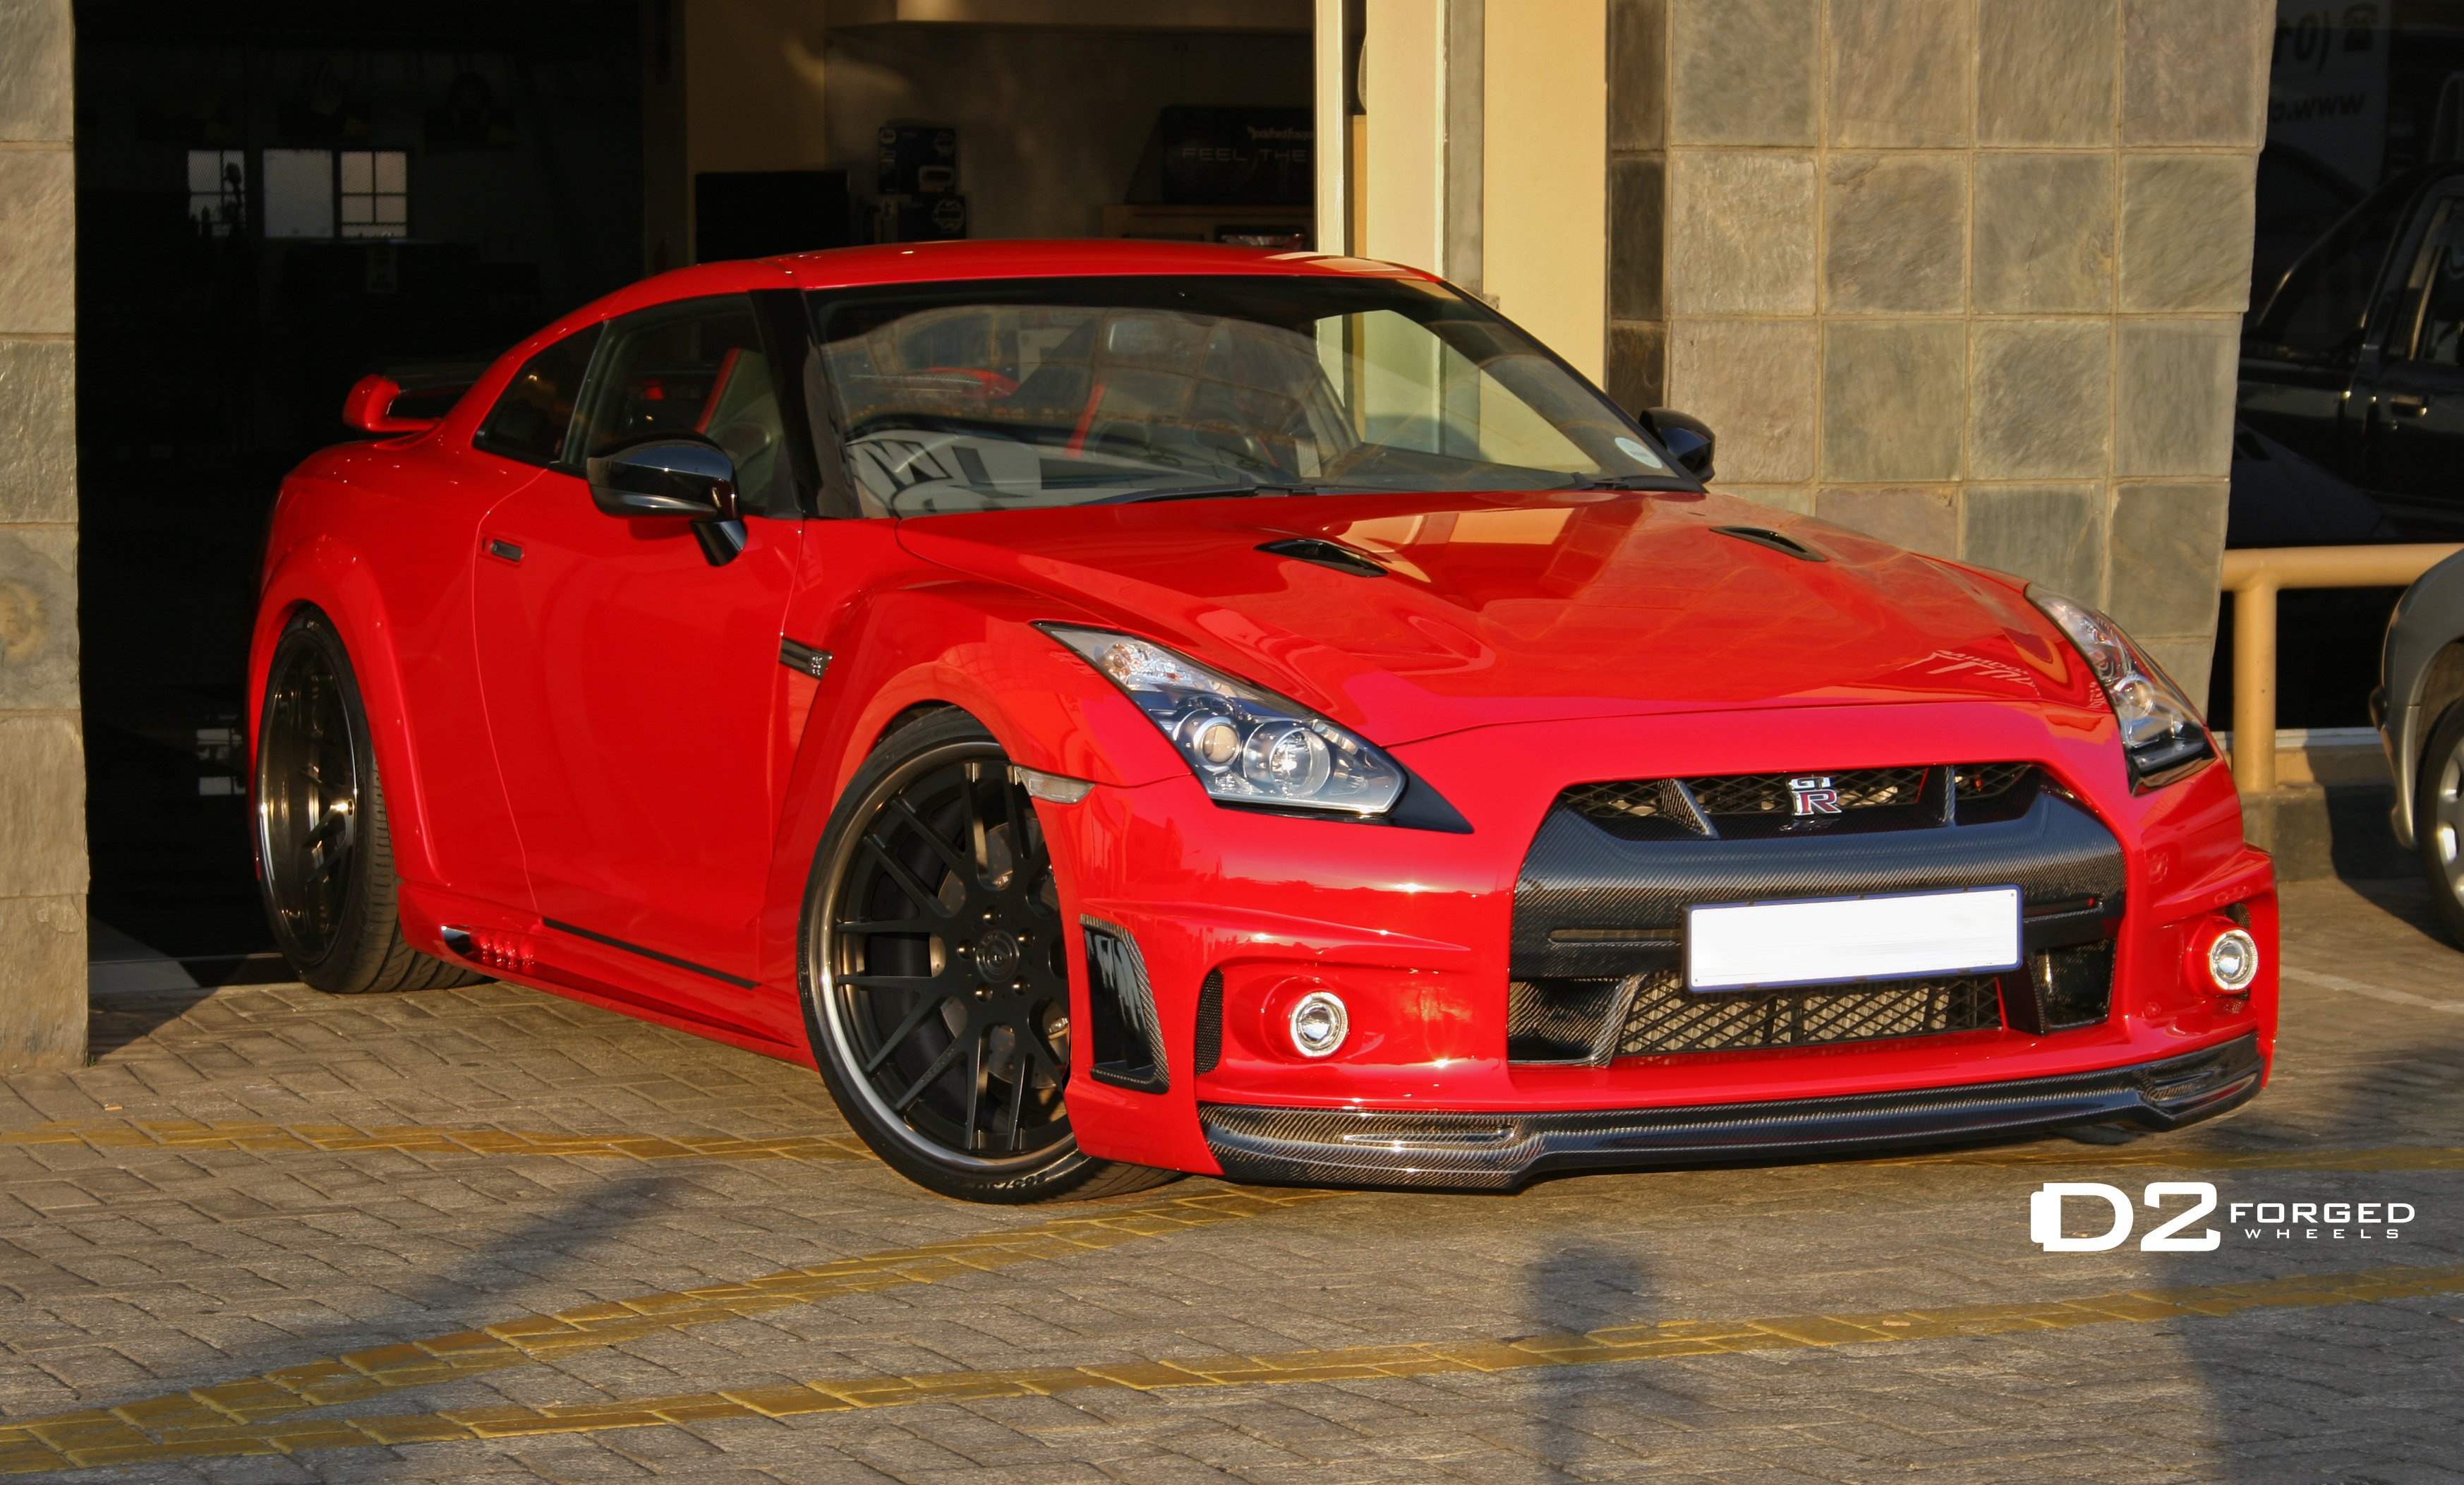 Gt R Nismo Nissan R35 Tuning Supercar Coupe Japan Cars Red